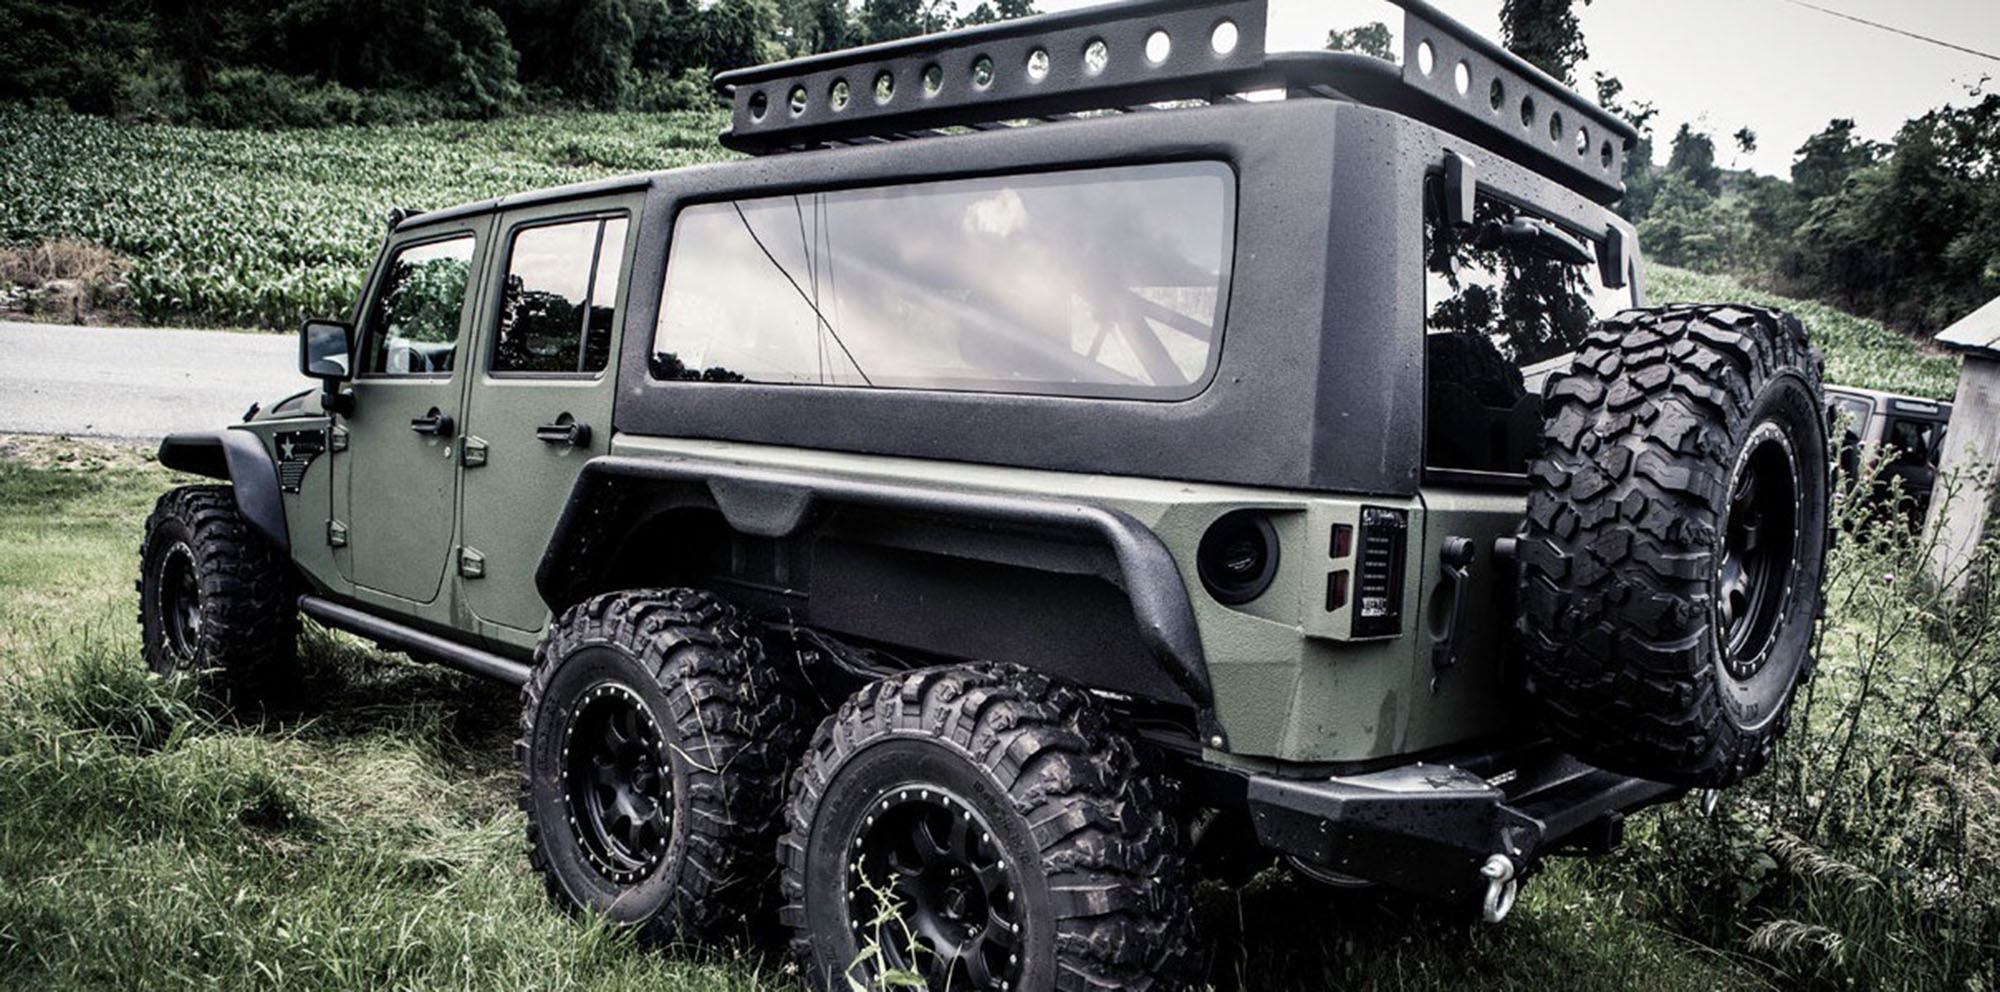 G Patton Tomahawk:: 6x6 Jeep Wrangler Unveiled In China